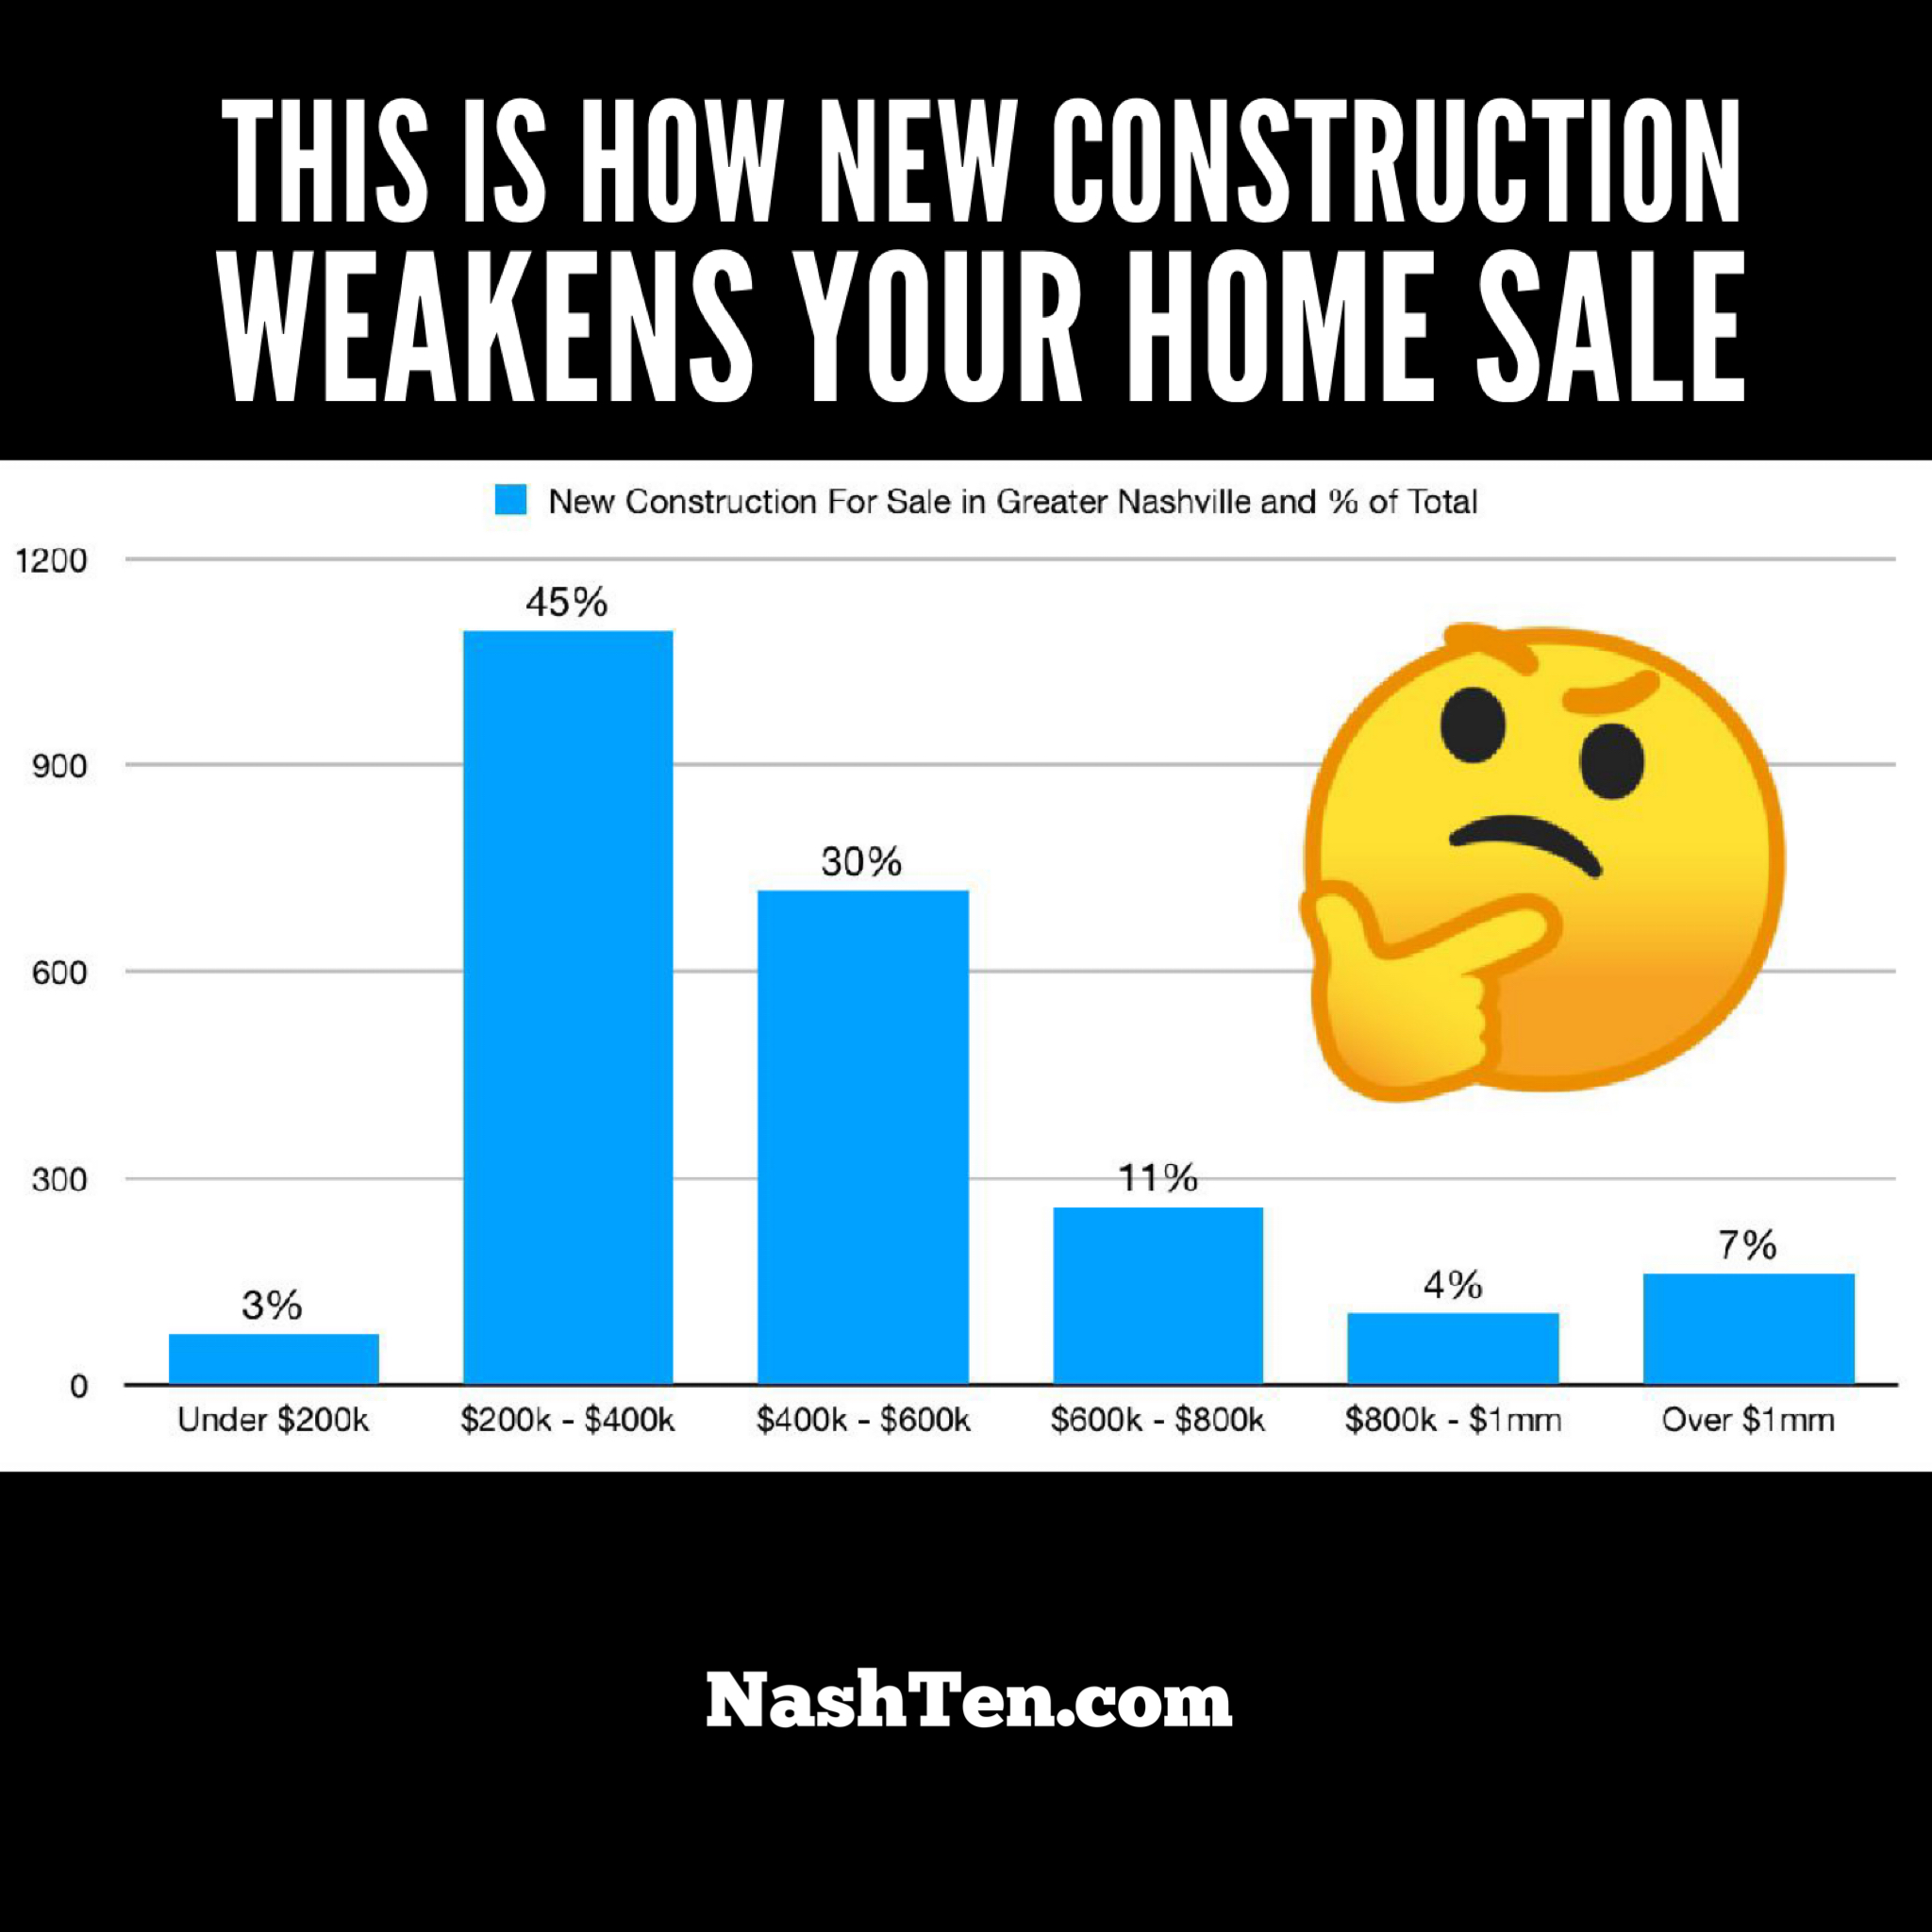 How New Construction Weakens Your Home Sale